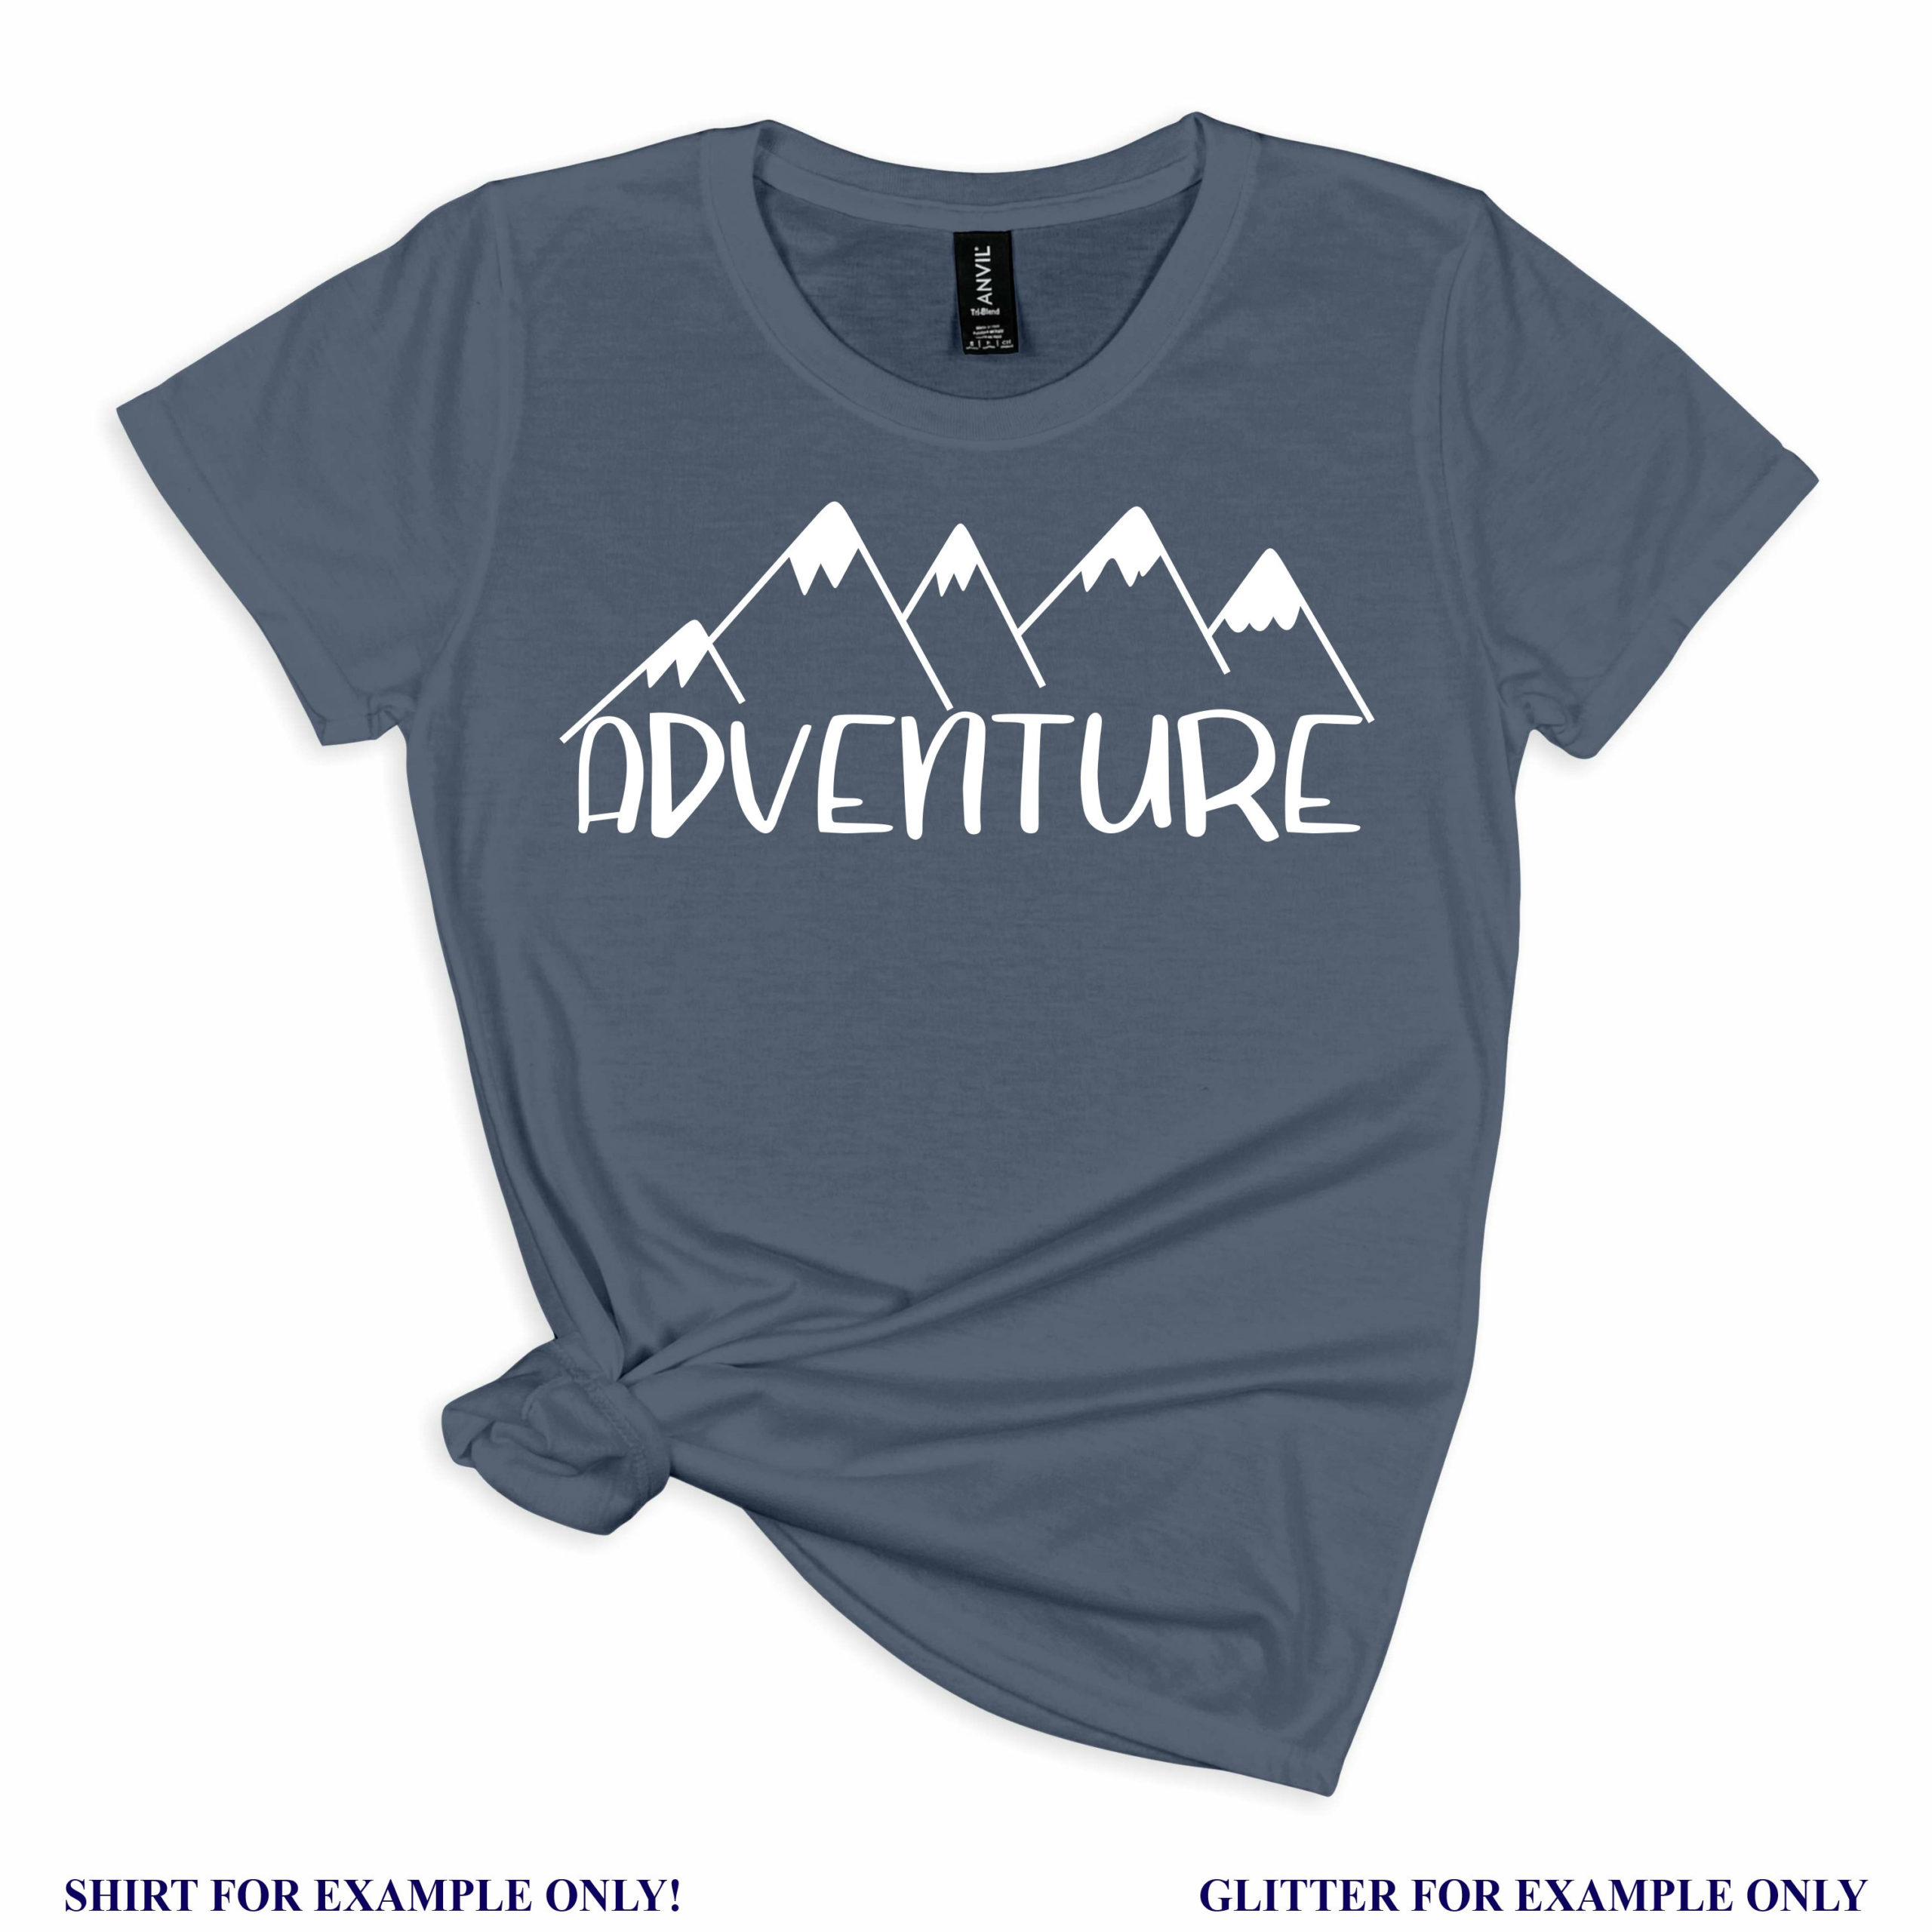 Adventure-awaits-svg-adventure-svg-vacation-svg-home-svg-camping-svg-tshirt-travel-svg-adventure-svg-for-cricutsilhouette-cut-file-5ef78c0a